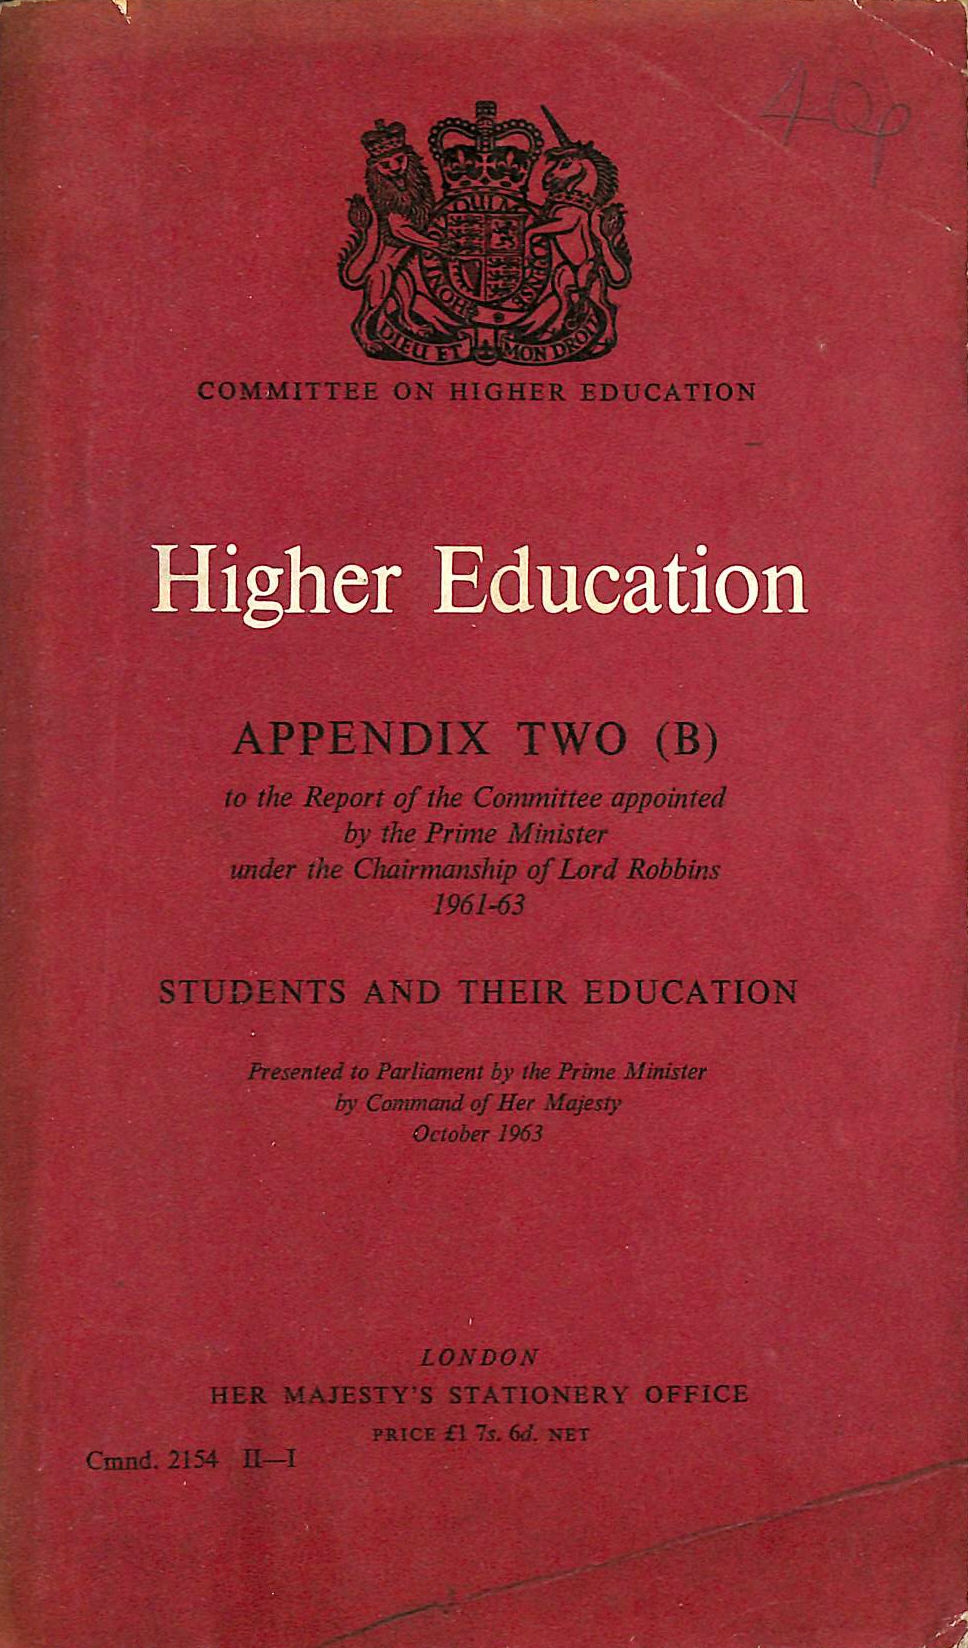 Image for Higher Education, Appendix Two (B)